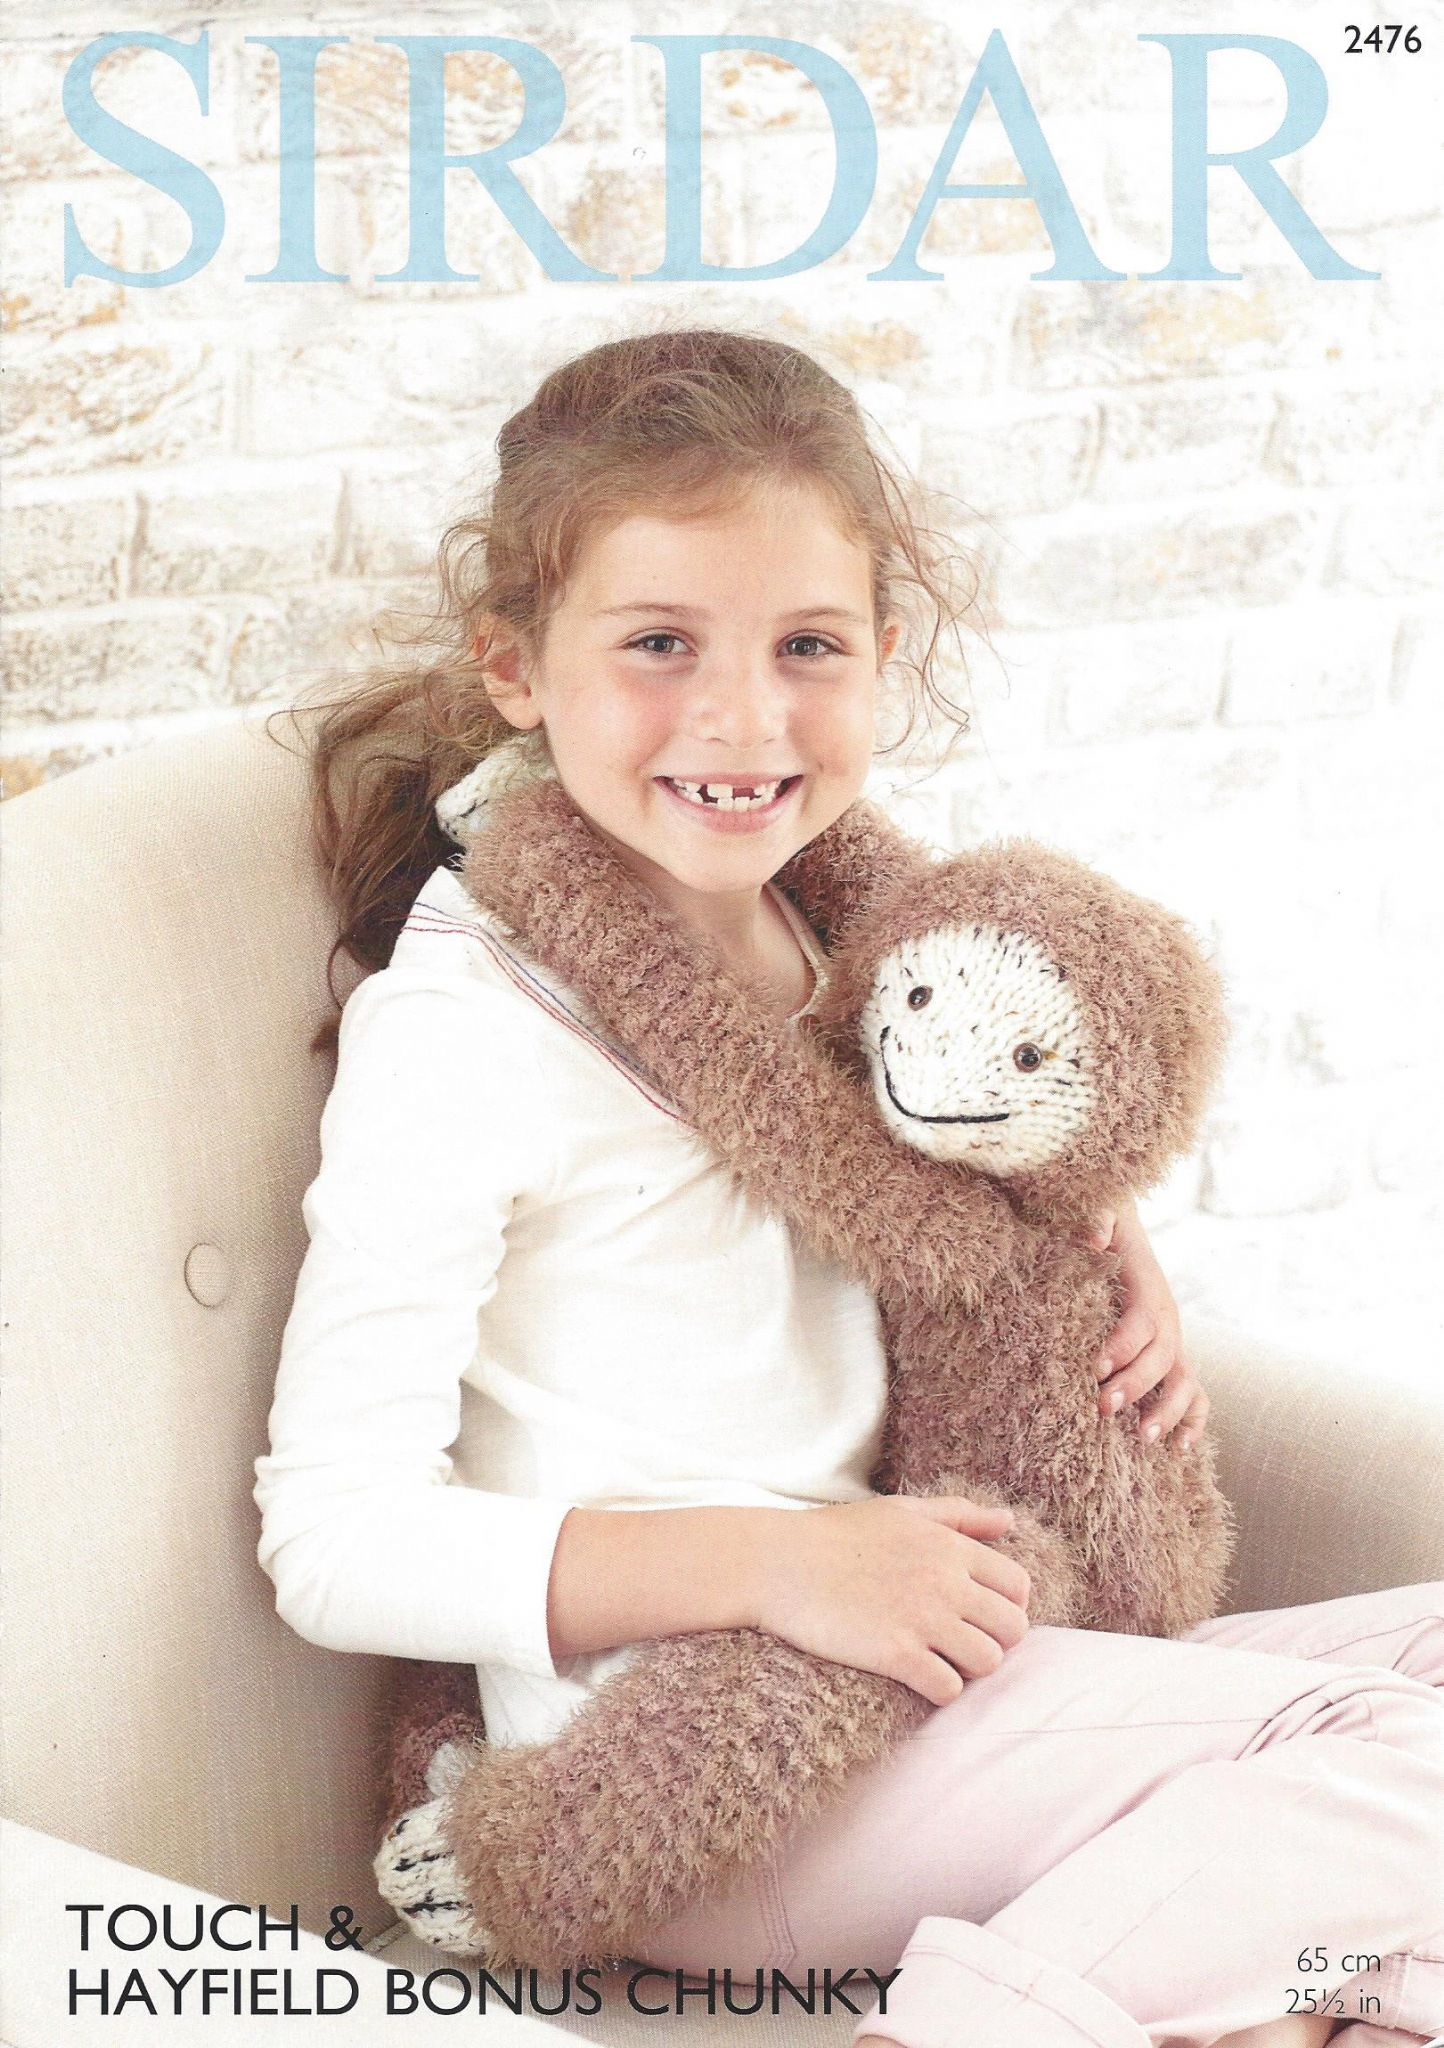 Sirdar Toy Knitting Patterns : Sirdar Touch - 2476 Gordon the Sloth Toy Knitting Pattern